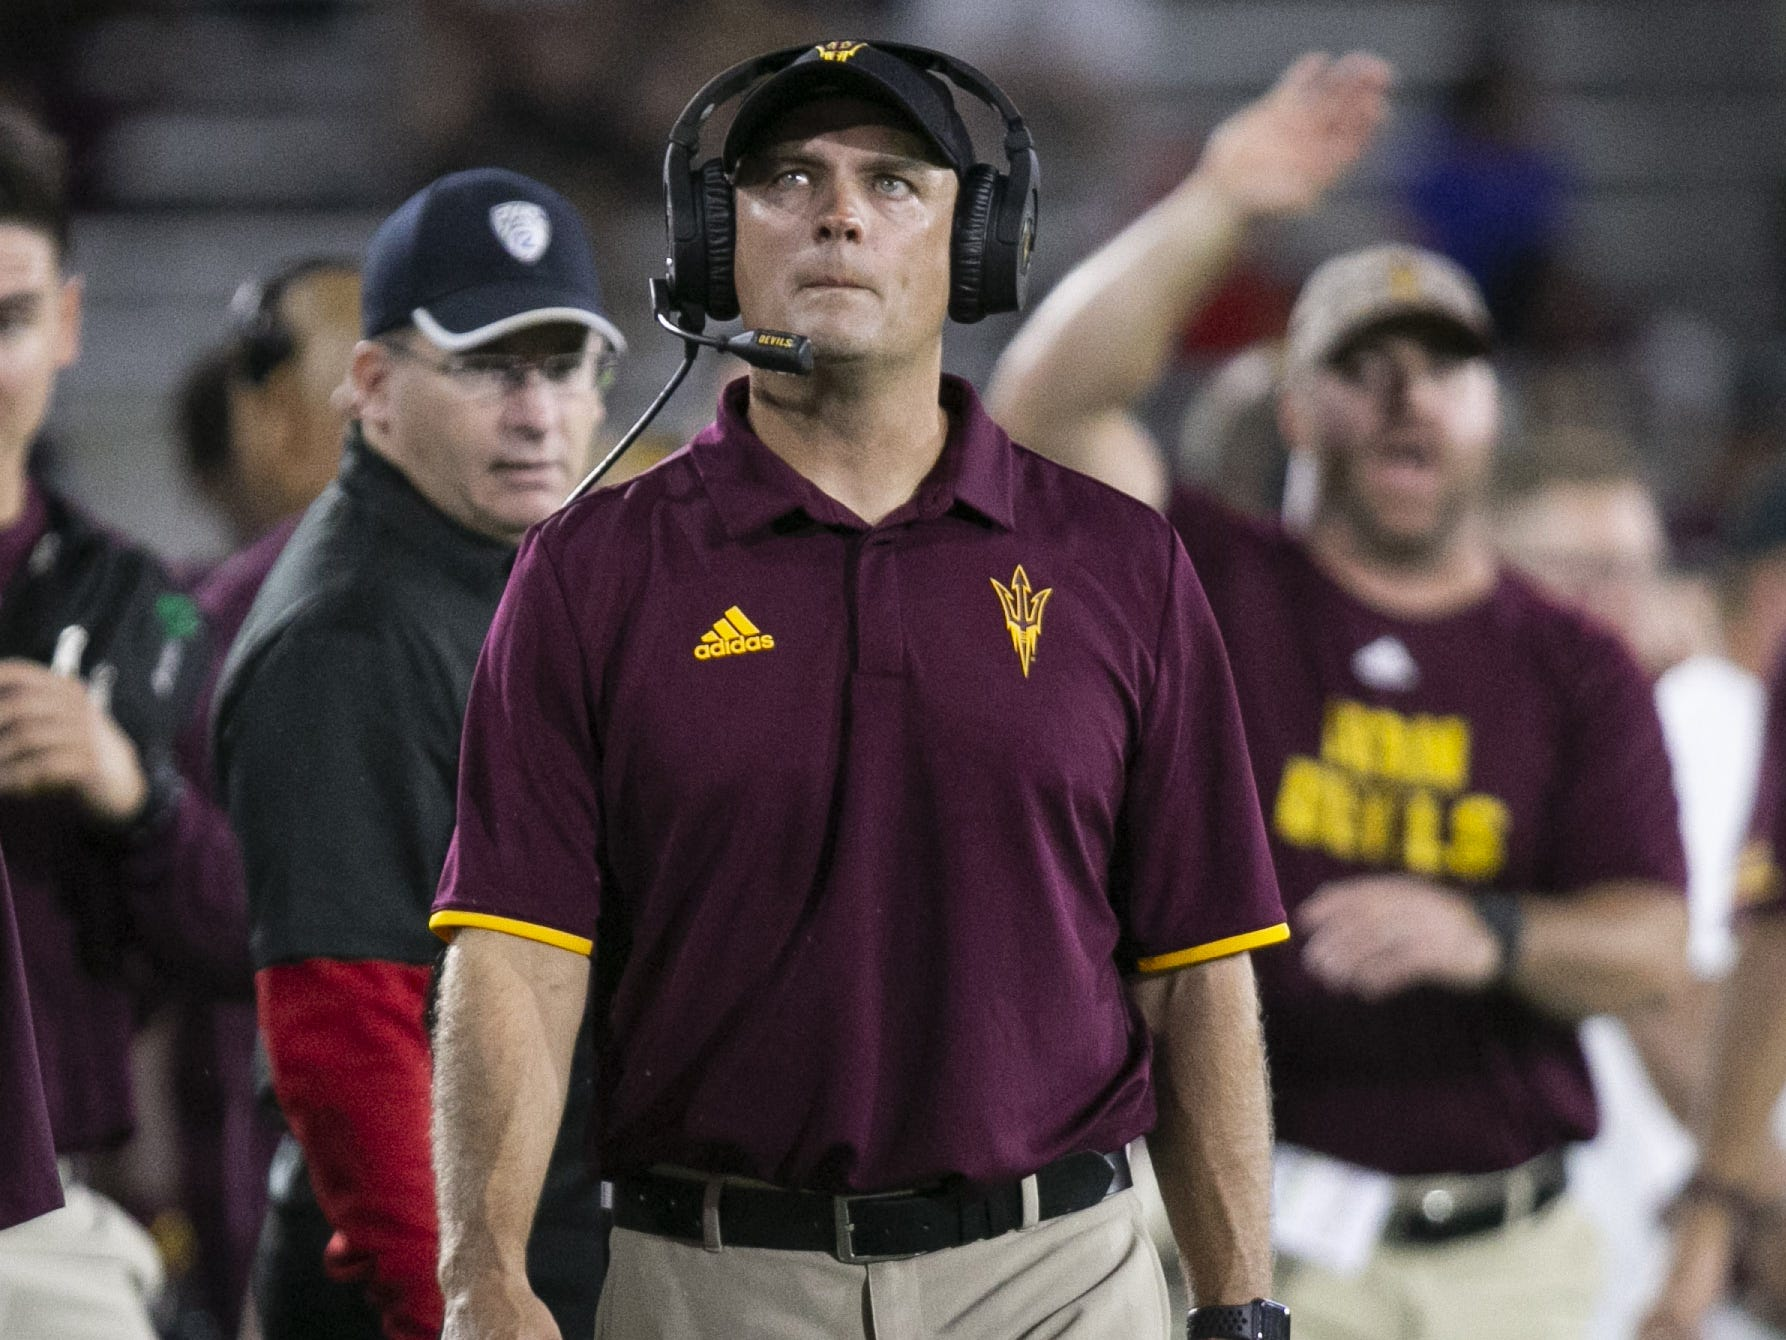 ASU ASU defensive coordinator Danny Gonzales looks on  during the first half of the Pac-12 college football game against Stanford at Sun Devil Stadium in Tempe on October 18, 2018.